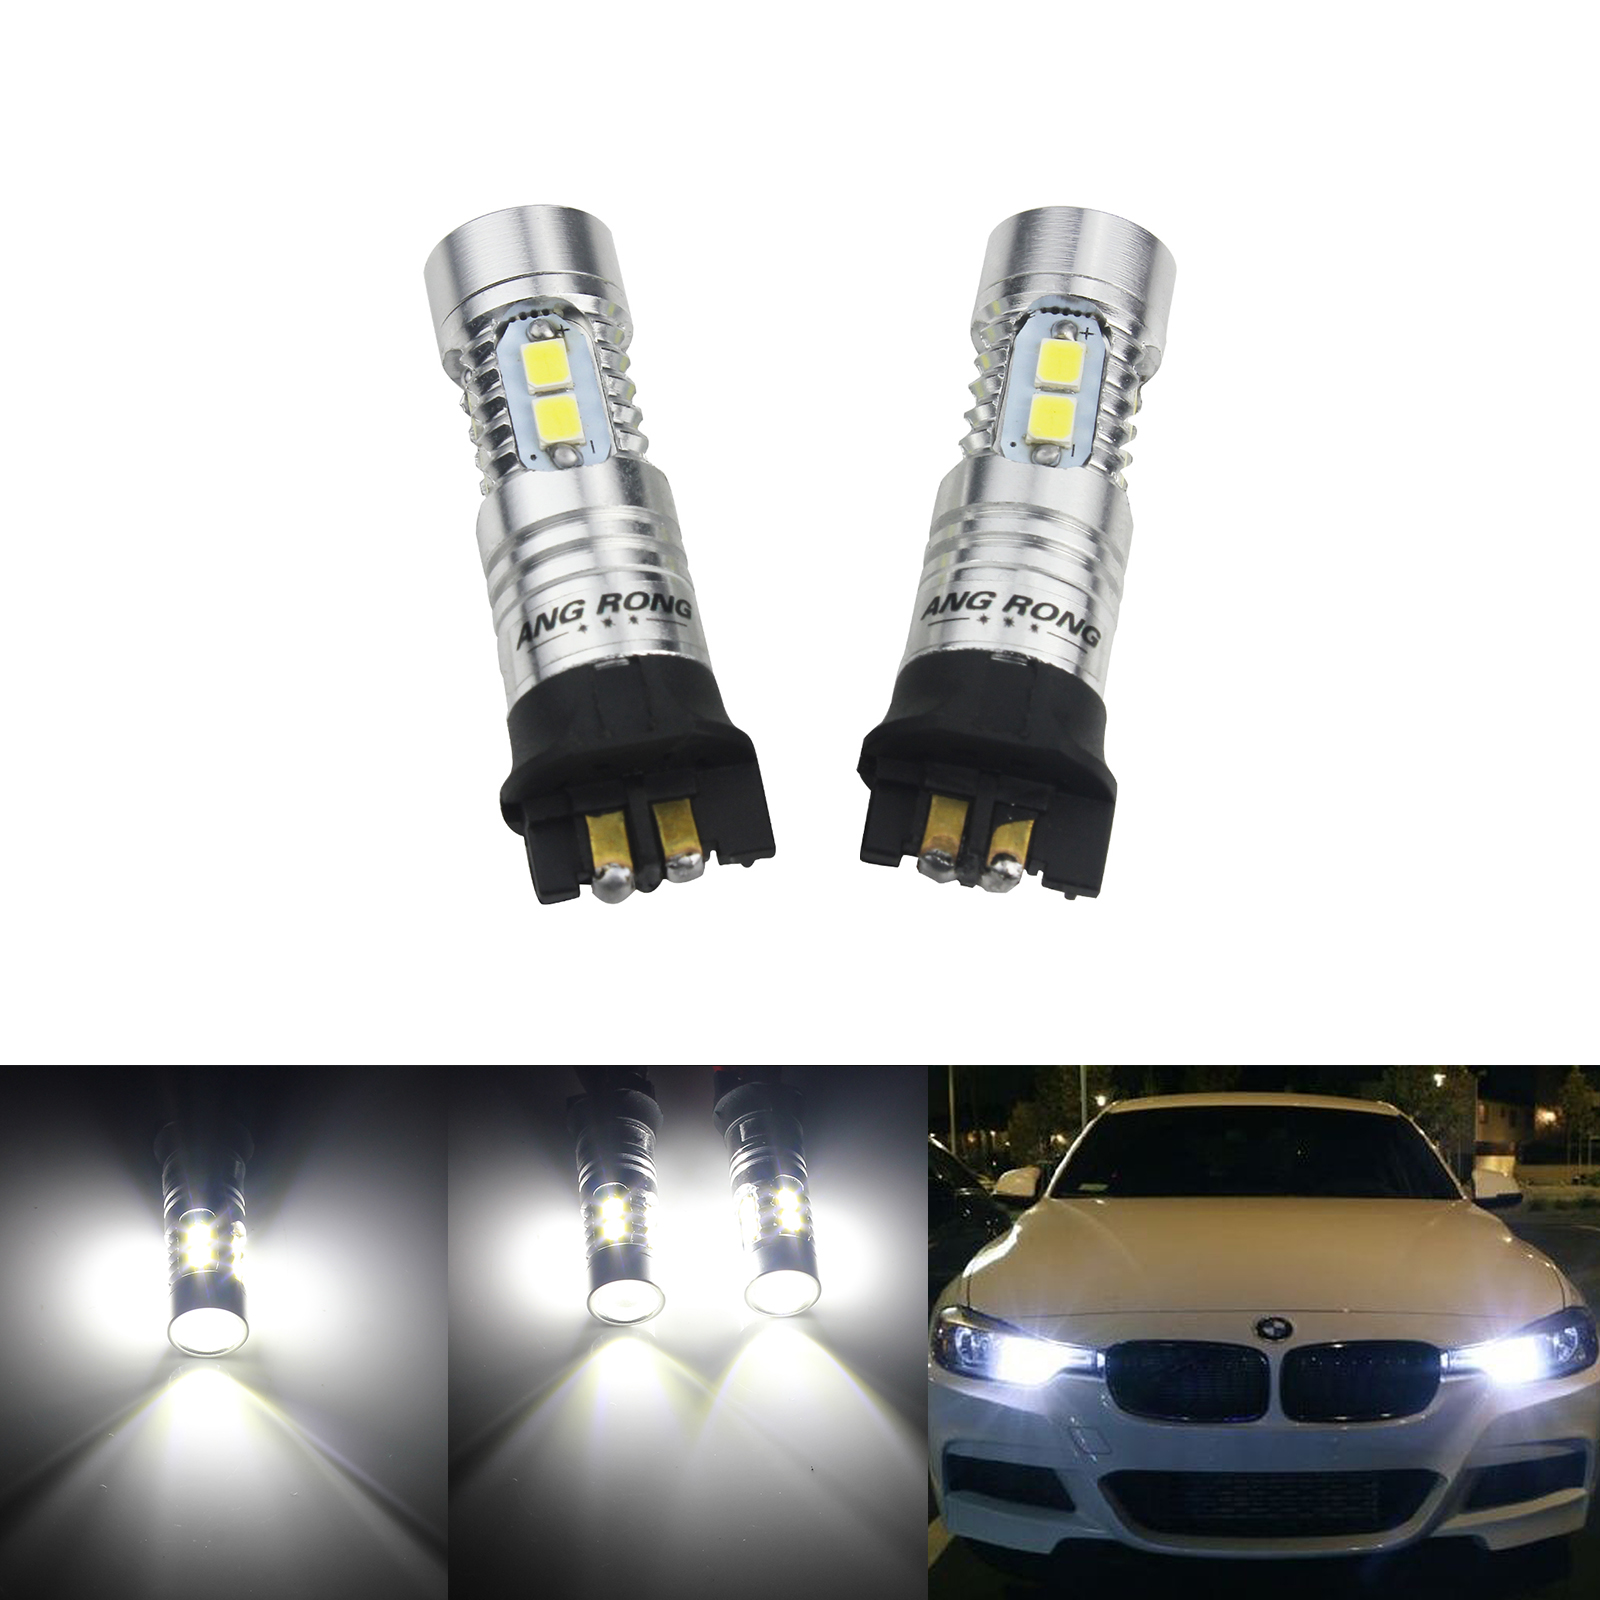 ANGRONG 2x Canbus PW24W PWY24W <font><b>LED</b></font> Light SMD For BMW 3 Series F30 <font><b>F31</b></font> F34 Audi A3 A4 A5 Q3 Ford Fusion VW Golf Passat CC image